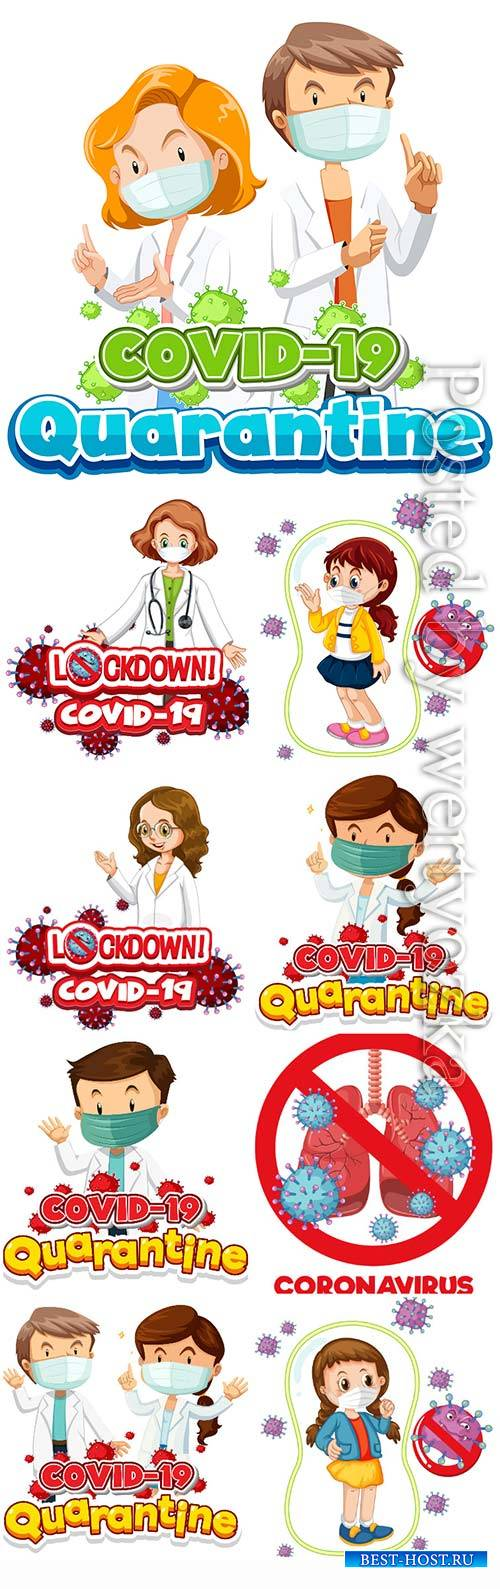 Coronavirus, medicine and people concept vector # 7